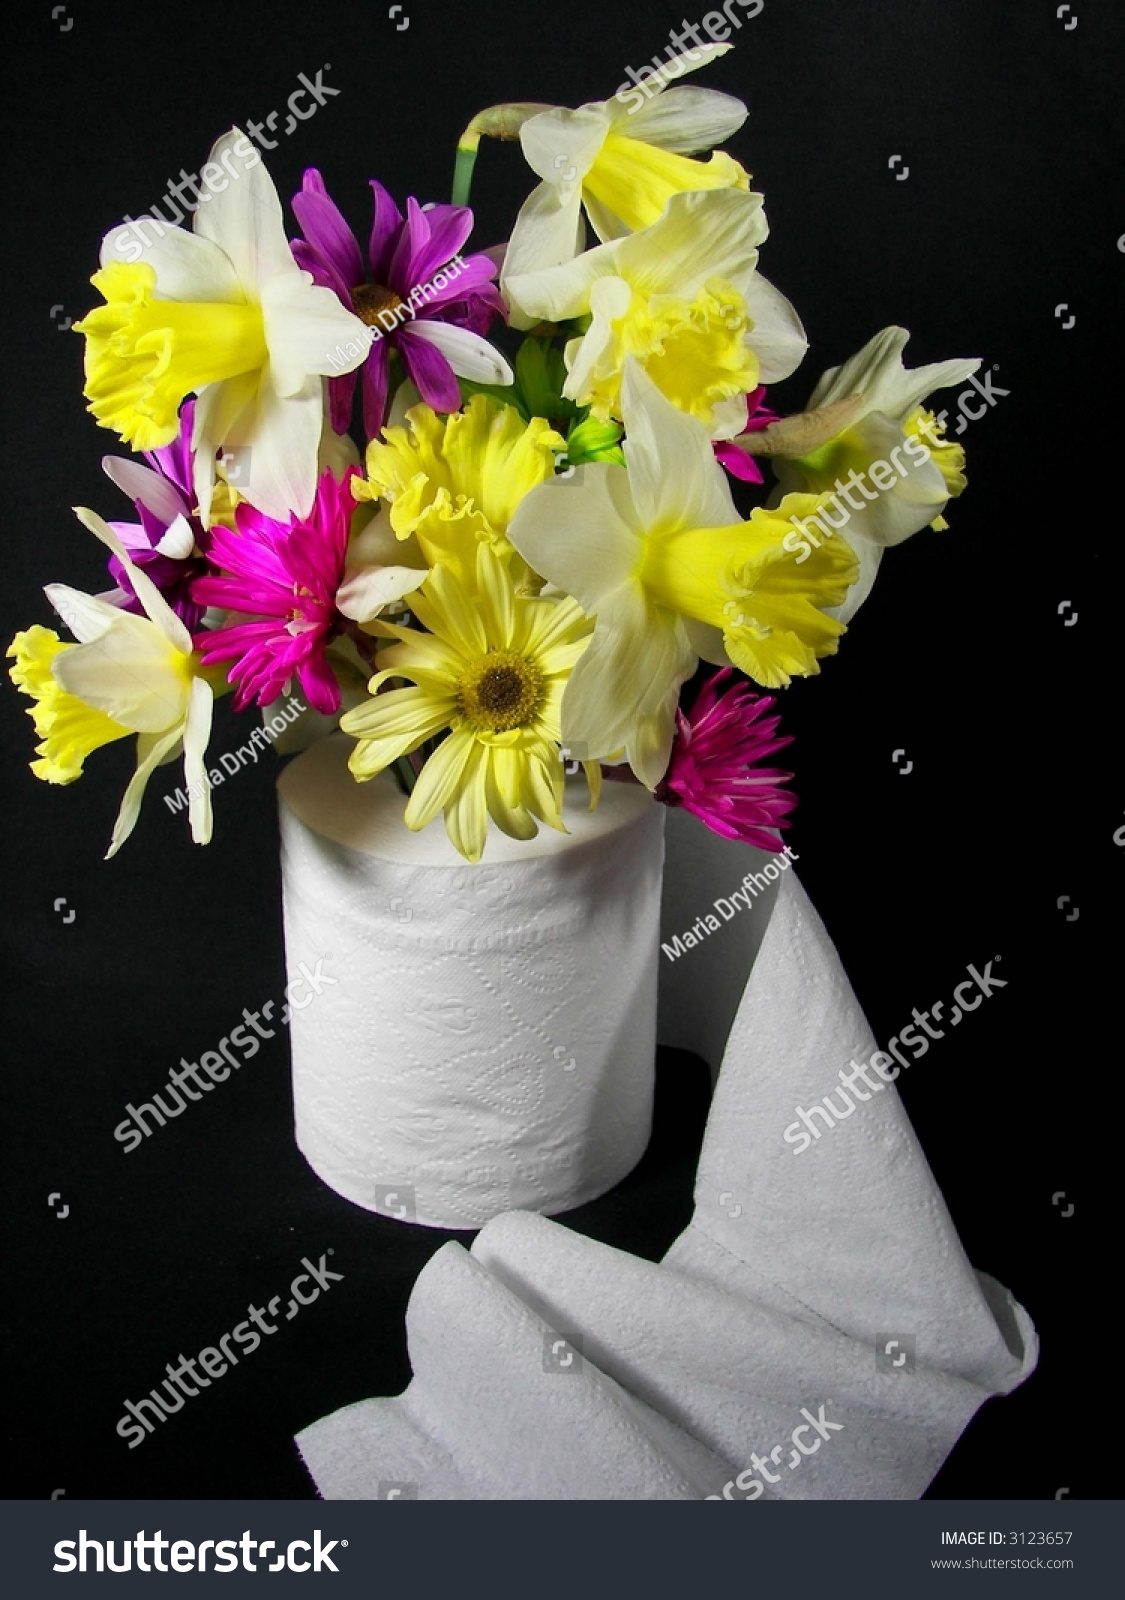 Daffodil Daisy Bouquet Toilet Paper Roll Stock Photo Royalty Free